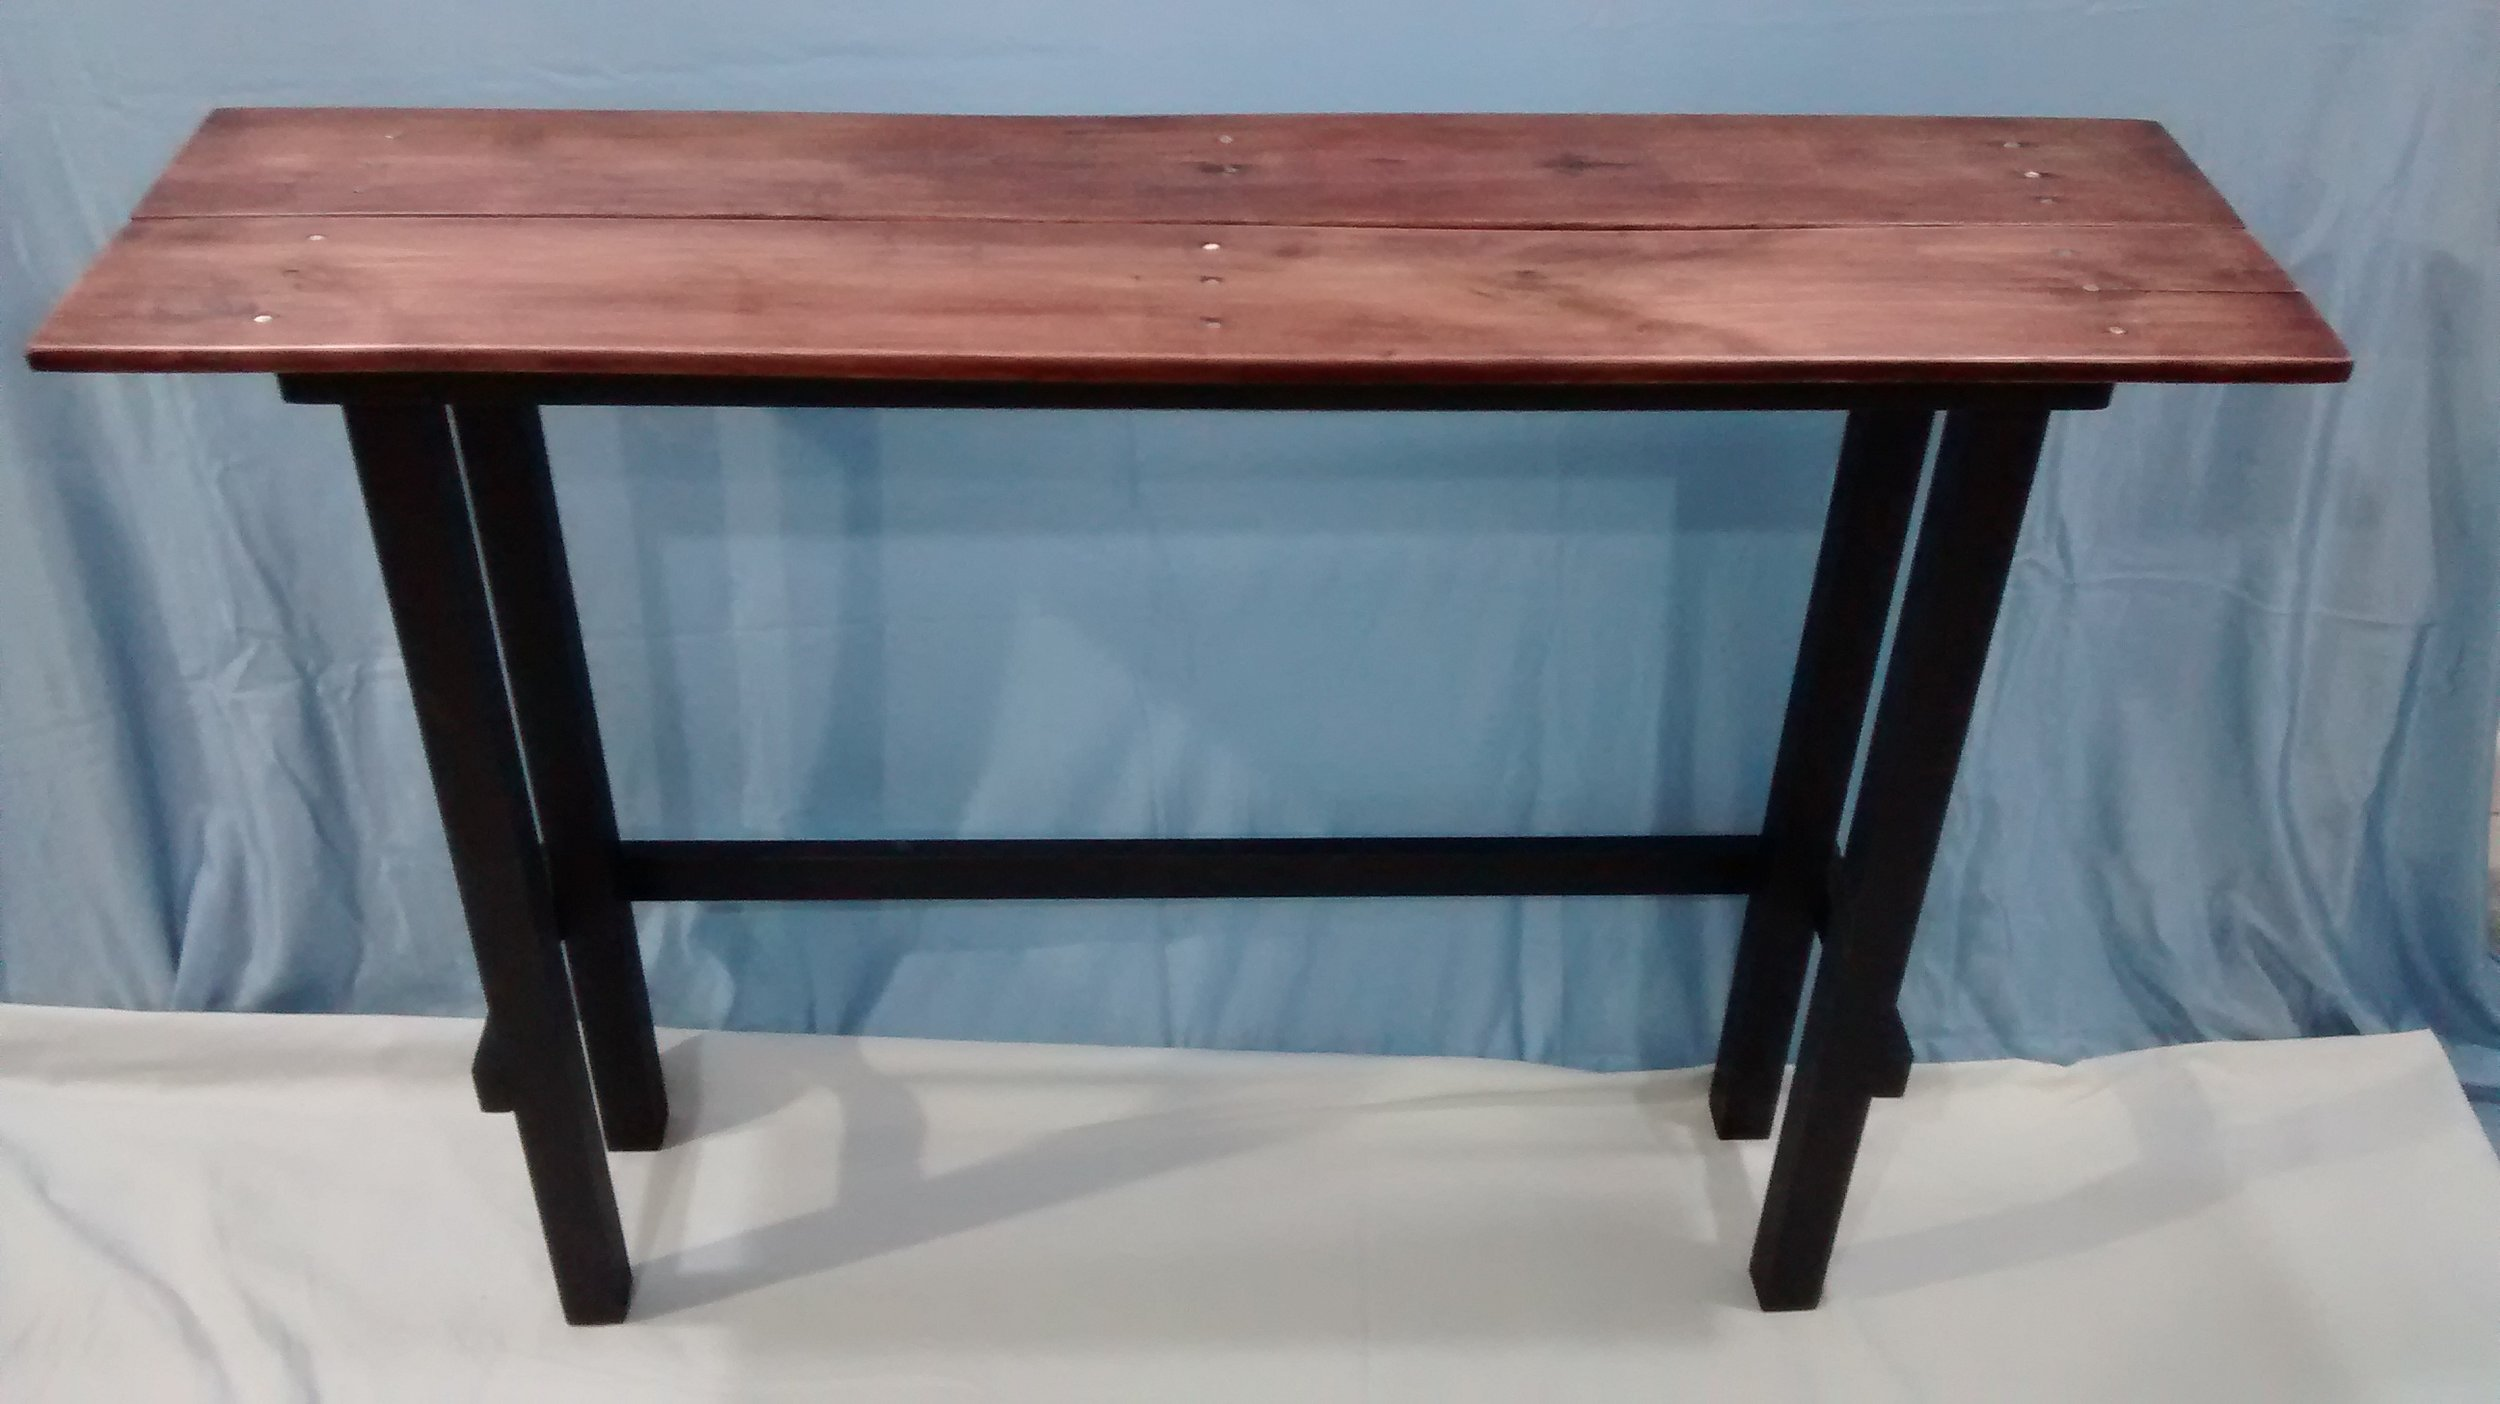 Two Side Tables with Reclaimed Wood Tops